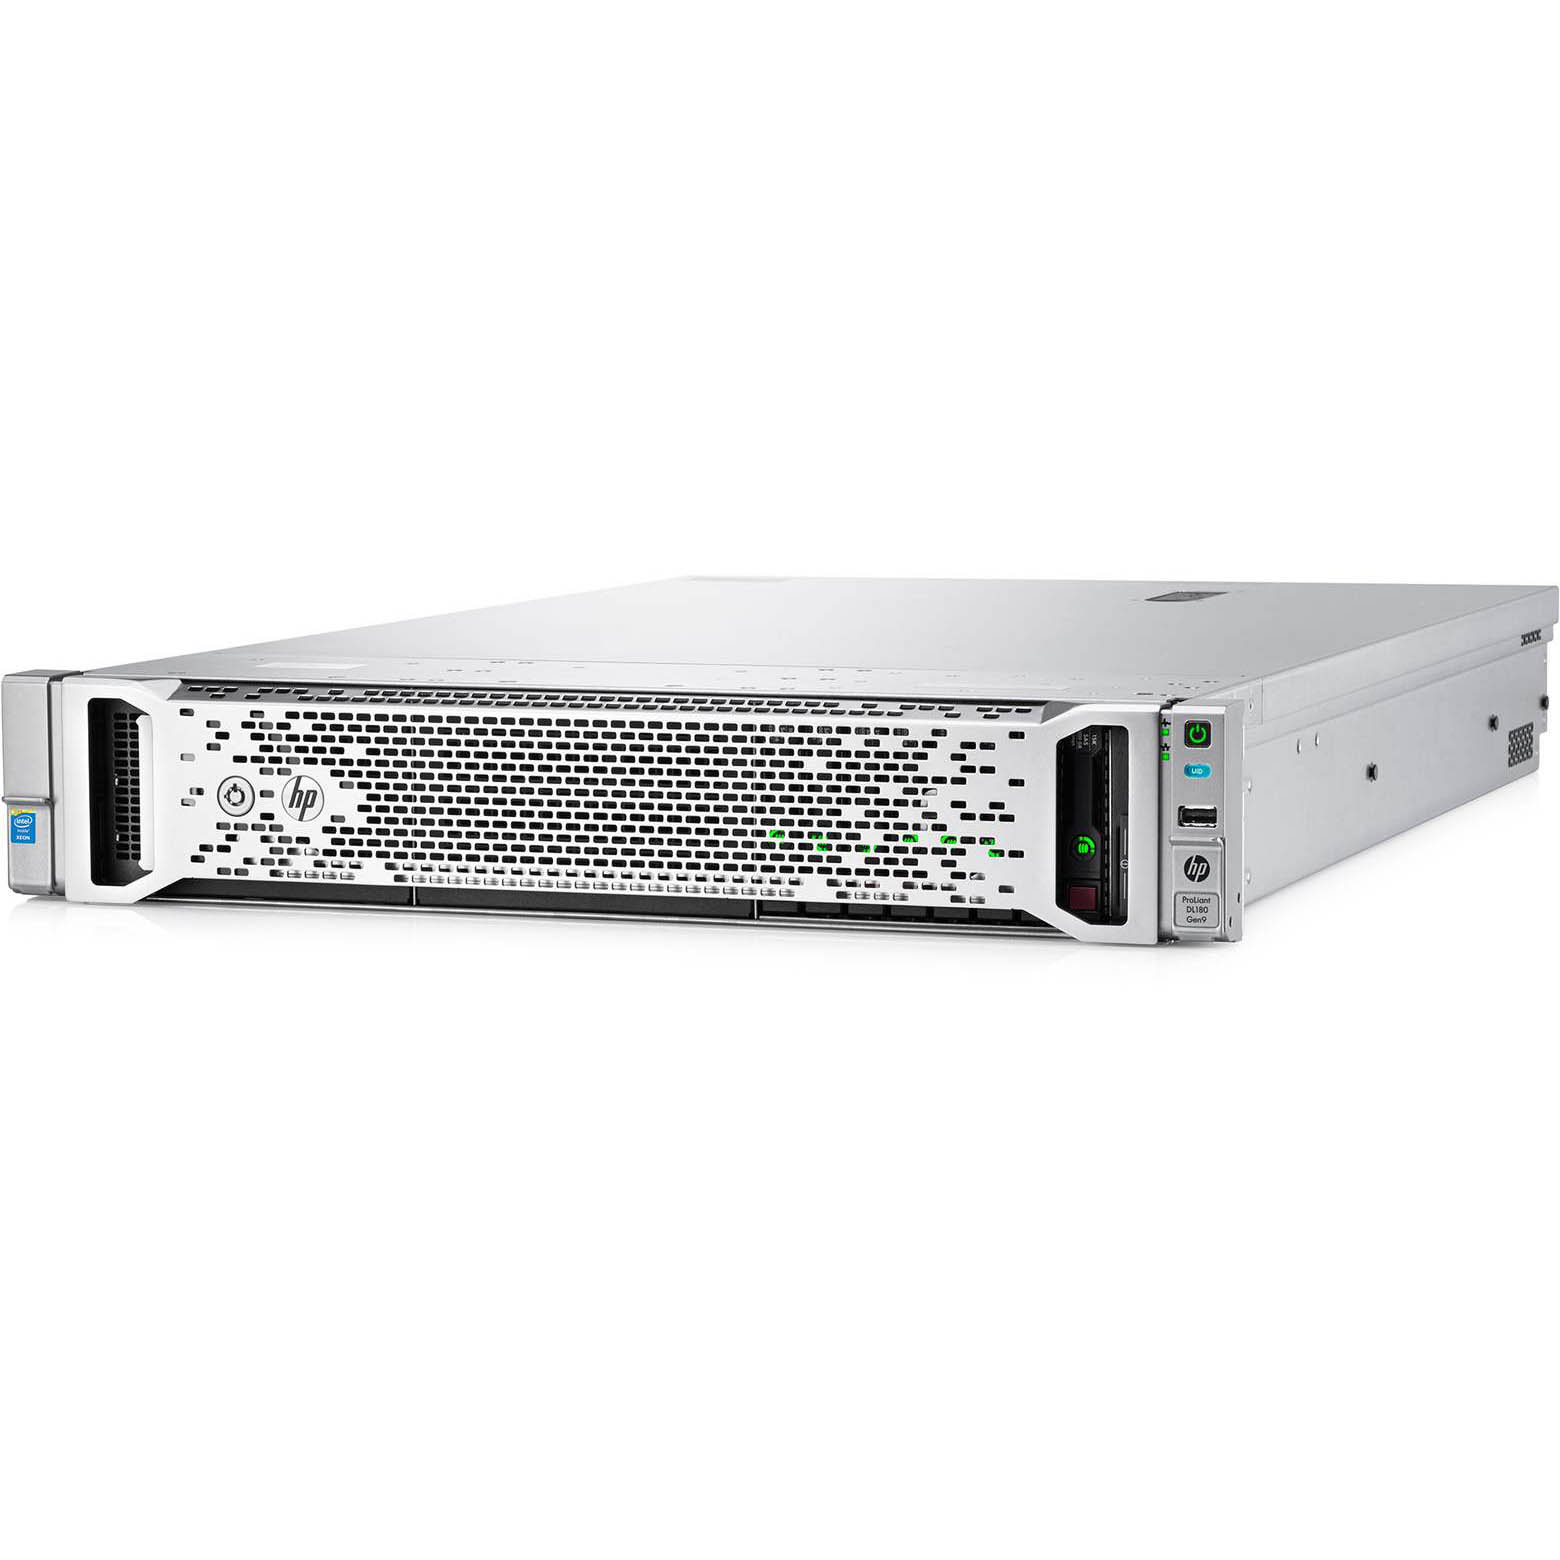 Сервер HP Proliant DL180 Gen9 Rack (2U) 778457-B21